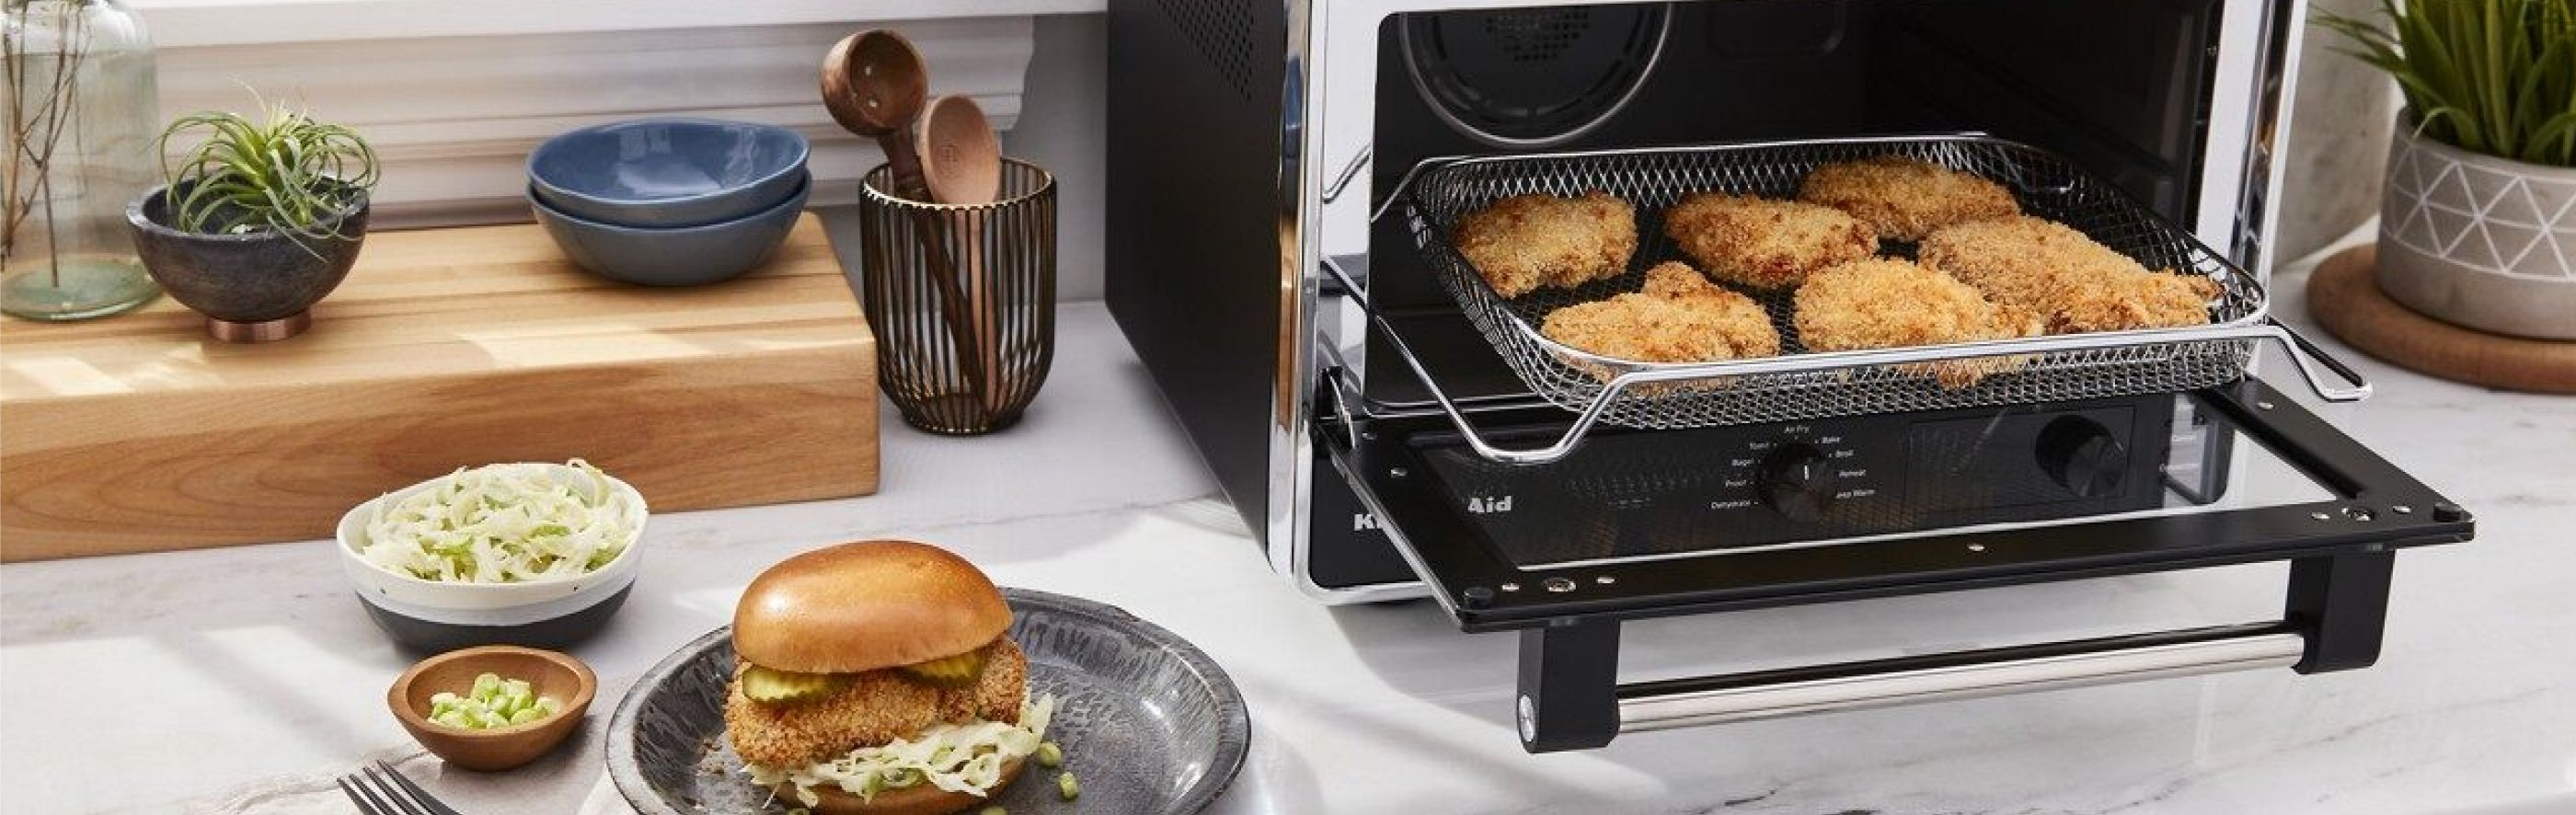 Countertop with KitchenAid® countertop oven with various fried foods